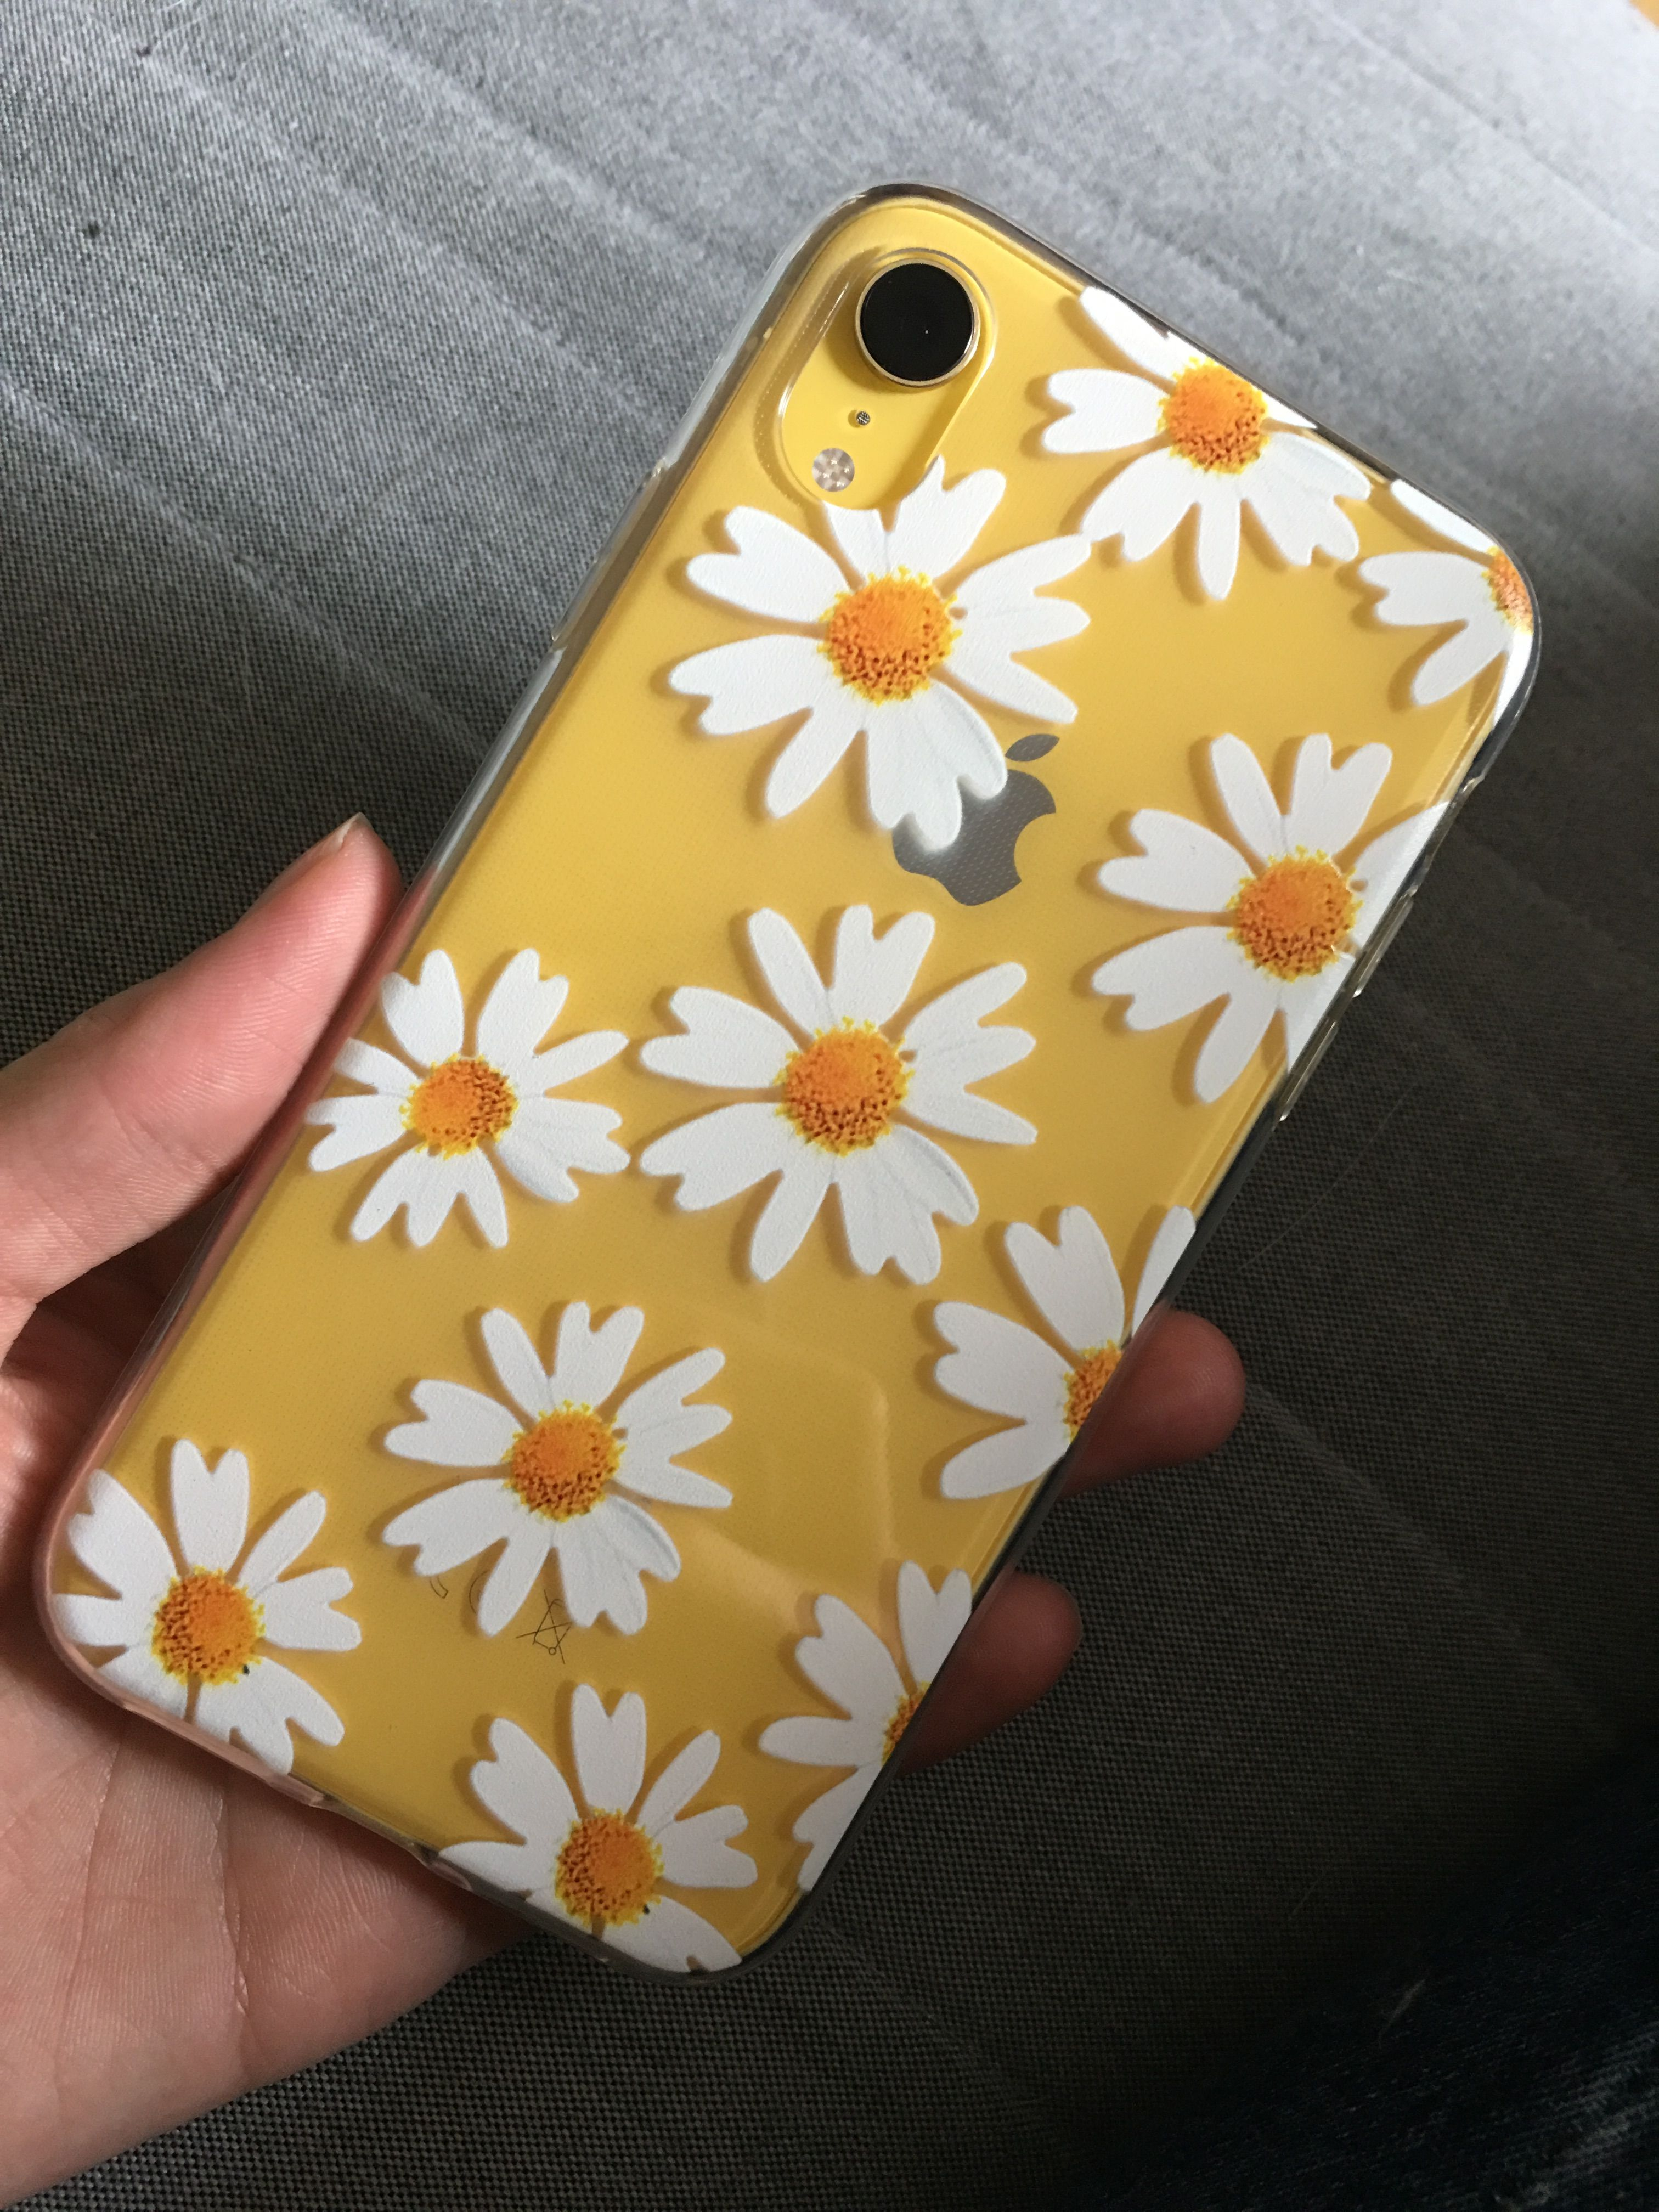 Iphone Holder For Bike >> #phonecase #iphone #iphonexr #yellow #flowers | Tumblr phone case, Diy phone case, Apple phone case